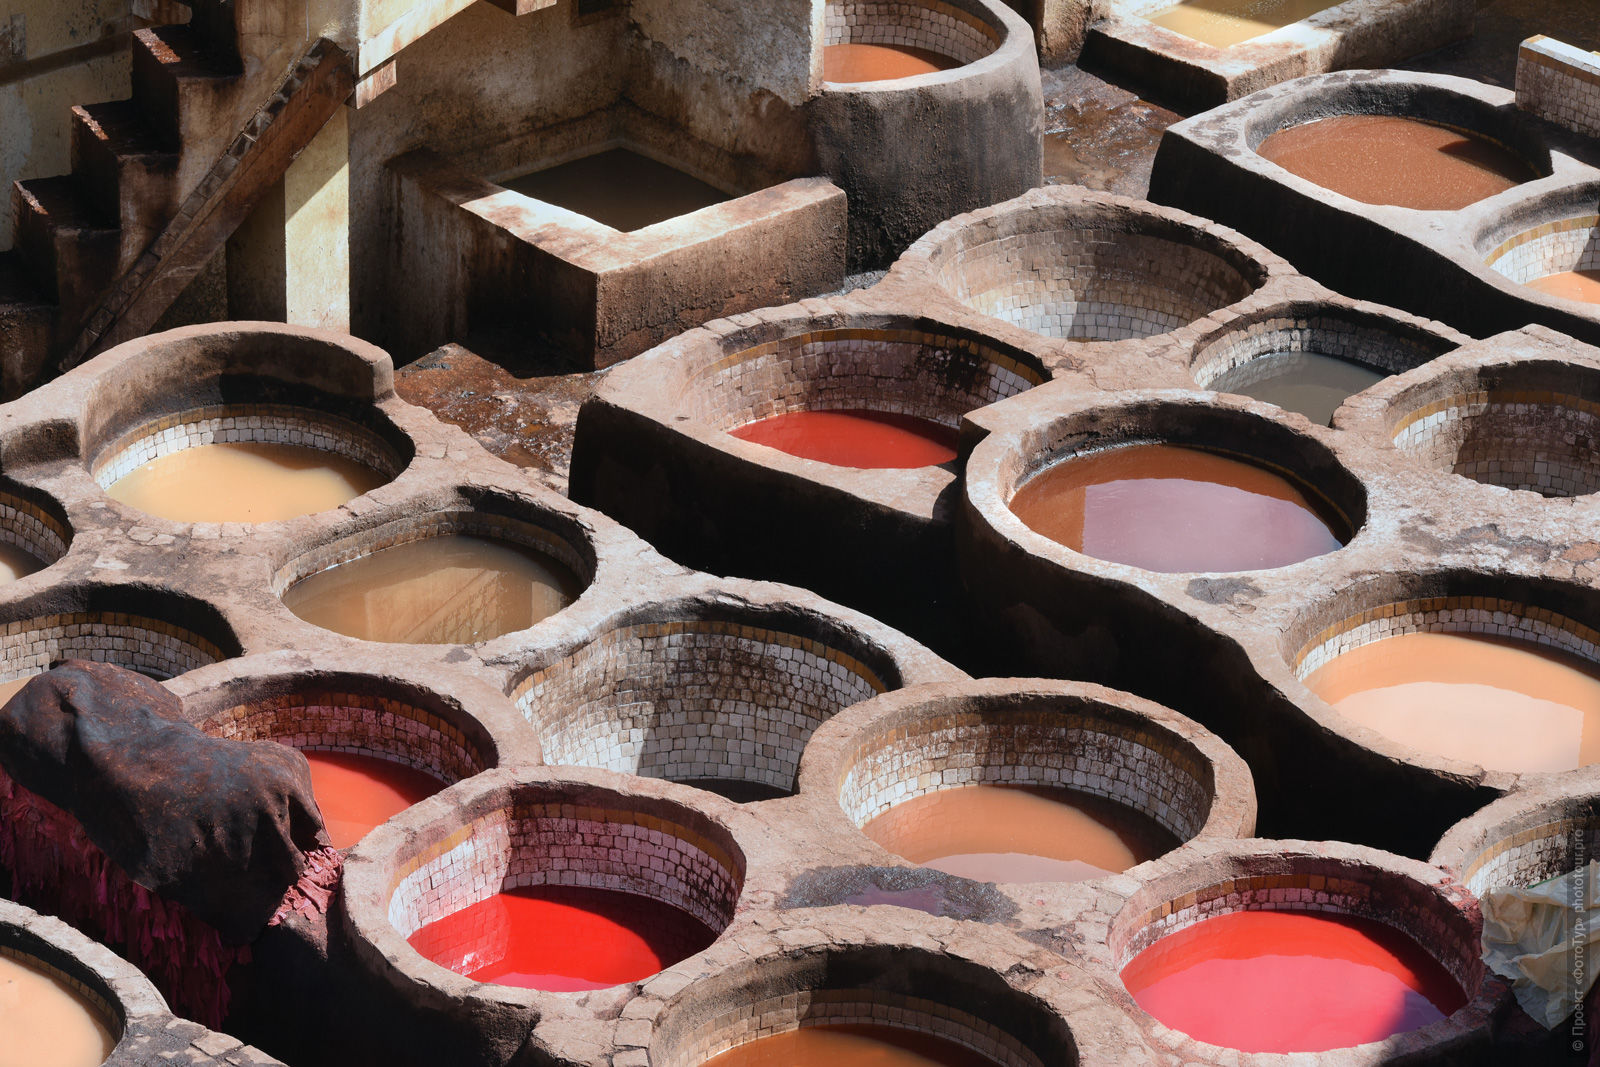 Baths with paint in the dyeing room of Shuar. Morocco, photo tour of Morocco, October 2018.